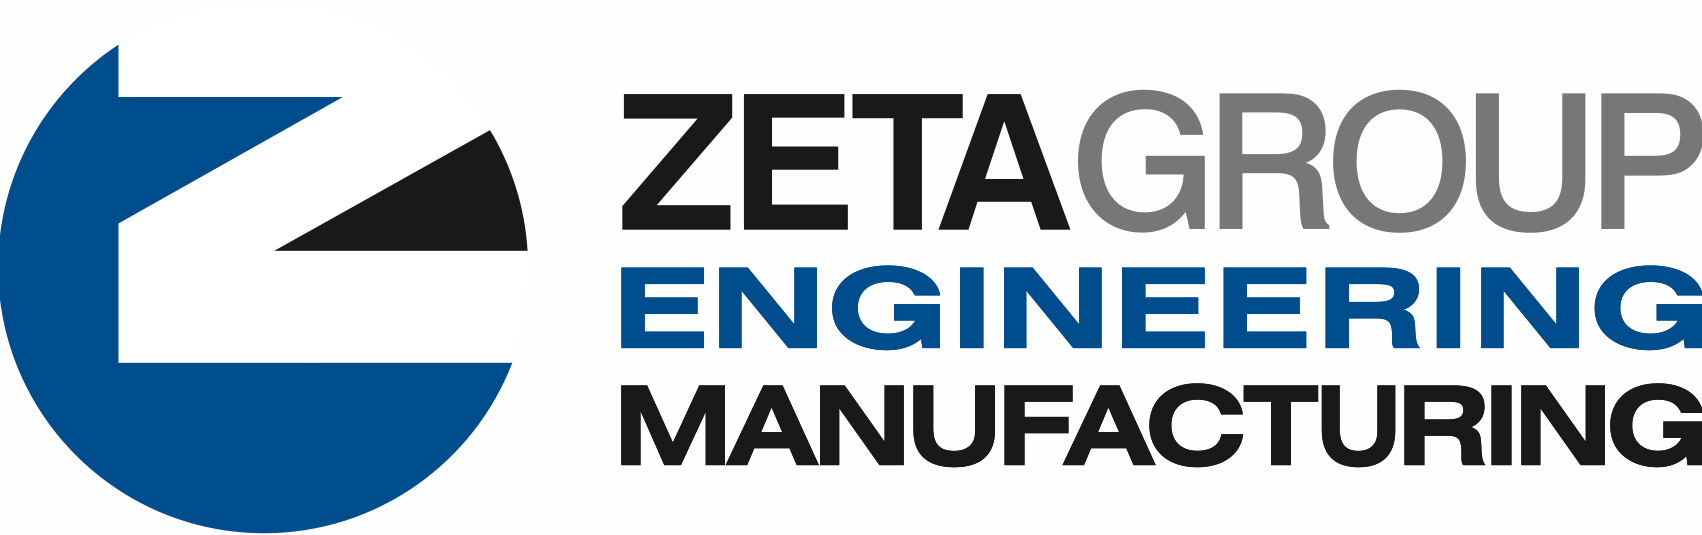 Zeta Group Engineering and Manufacturing